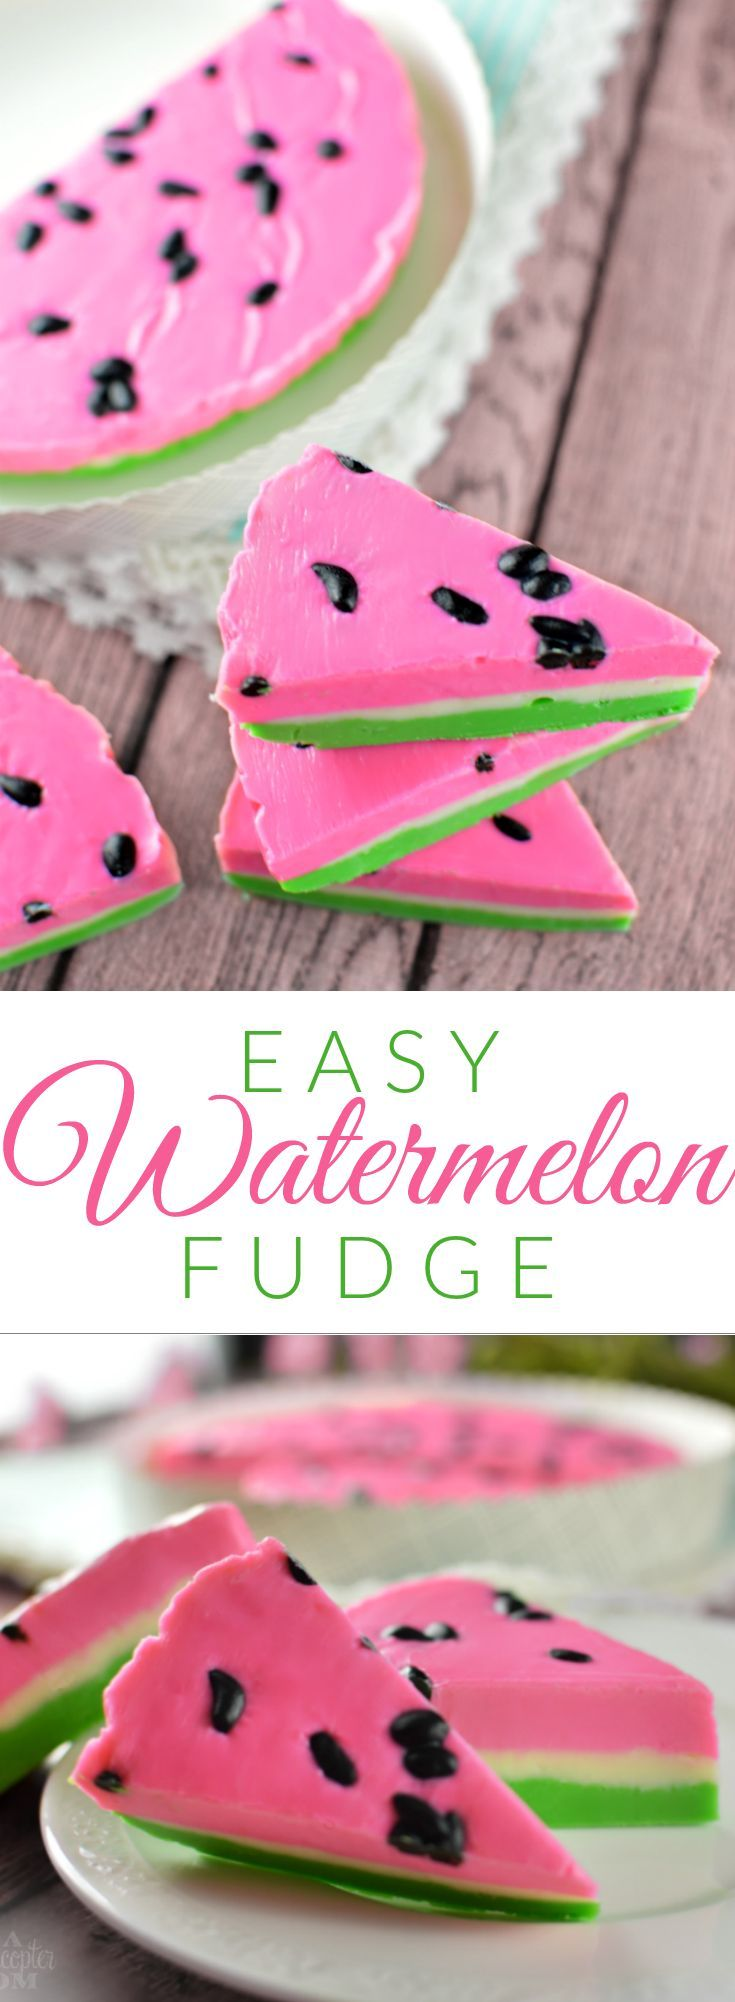 Easy Watermelon Fudge - Super simple to make, tastes amazing and is SO cute! Perfect for summer parties and cookouts!